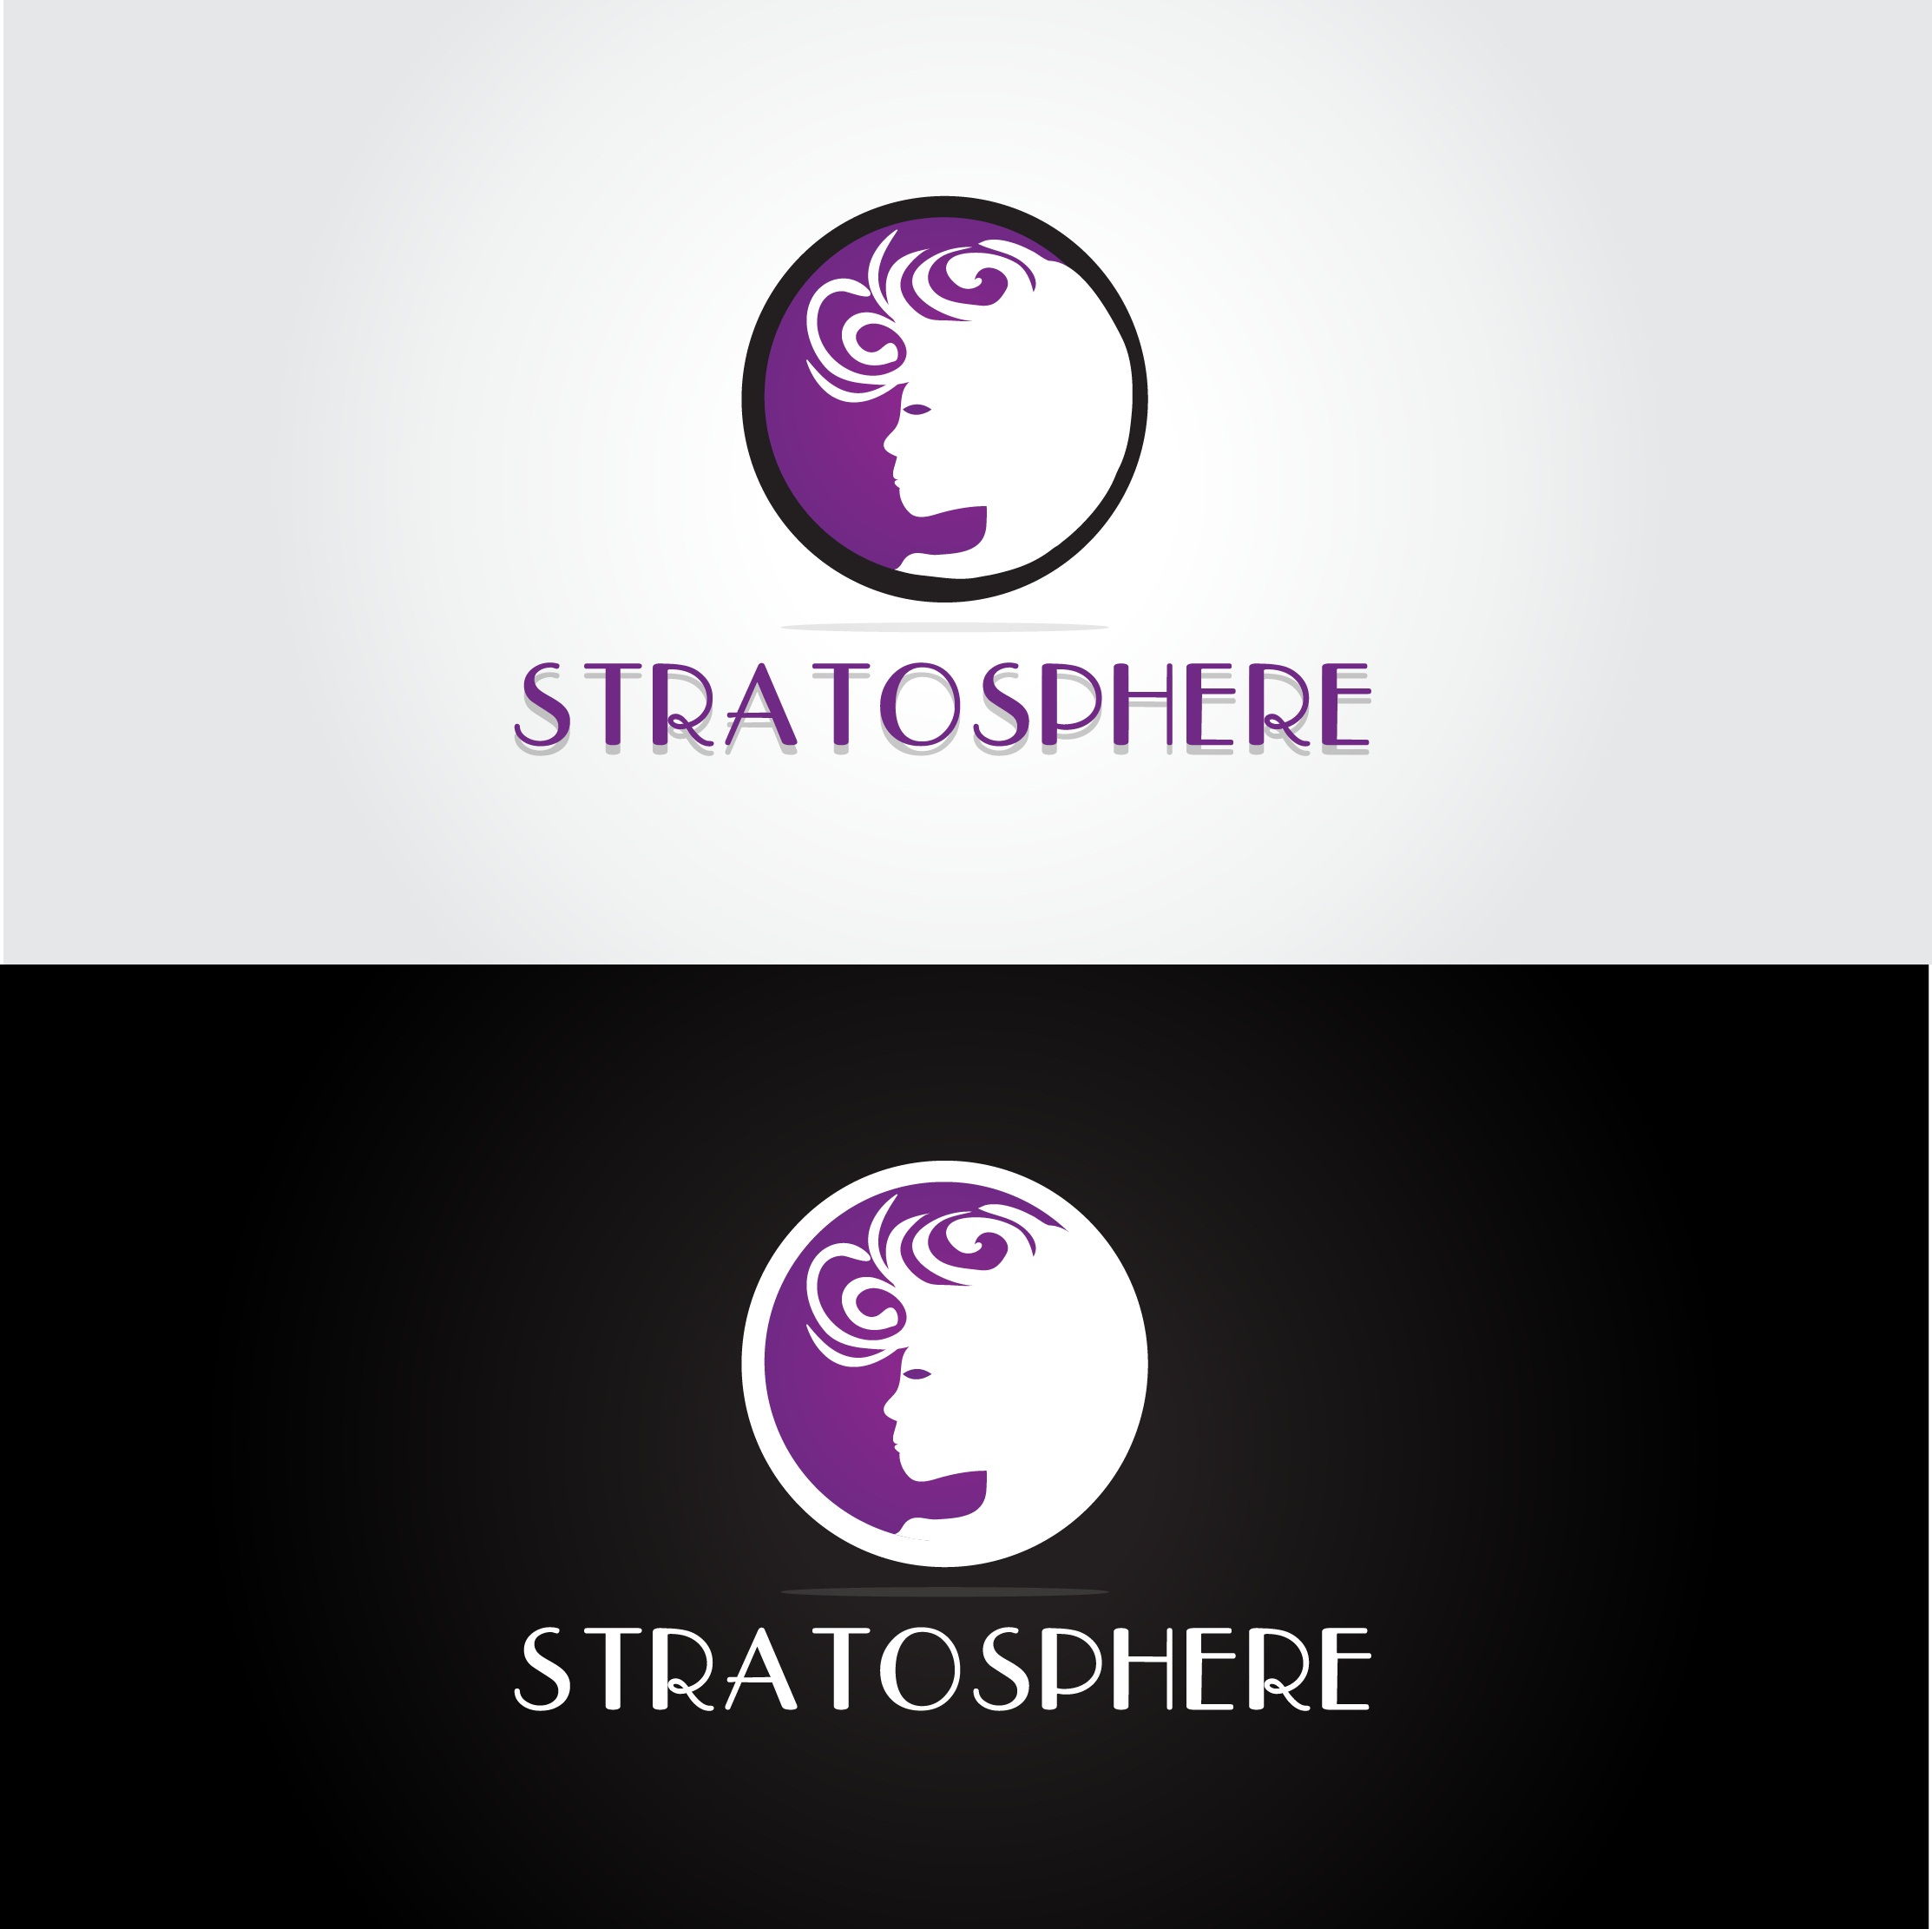 Logo Design by mediaproductionart - Entry No. 15 in the Logo Design Contest Captivating Logo Design for Stratosphere.